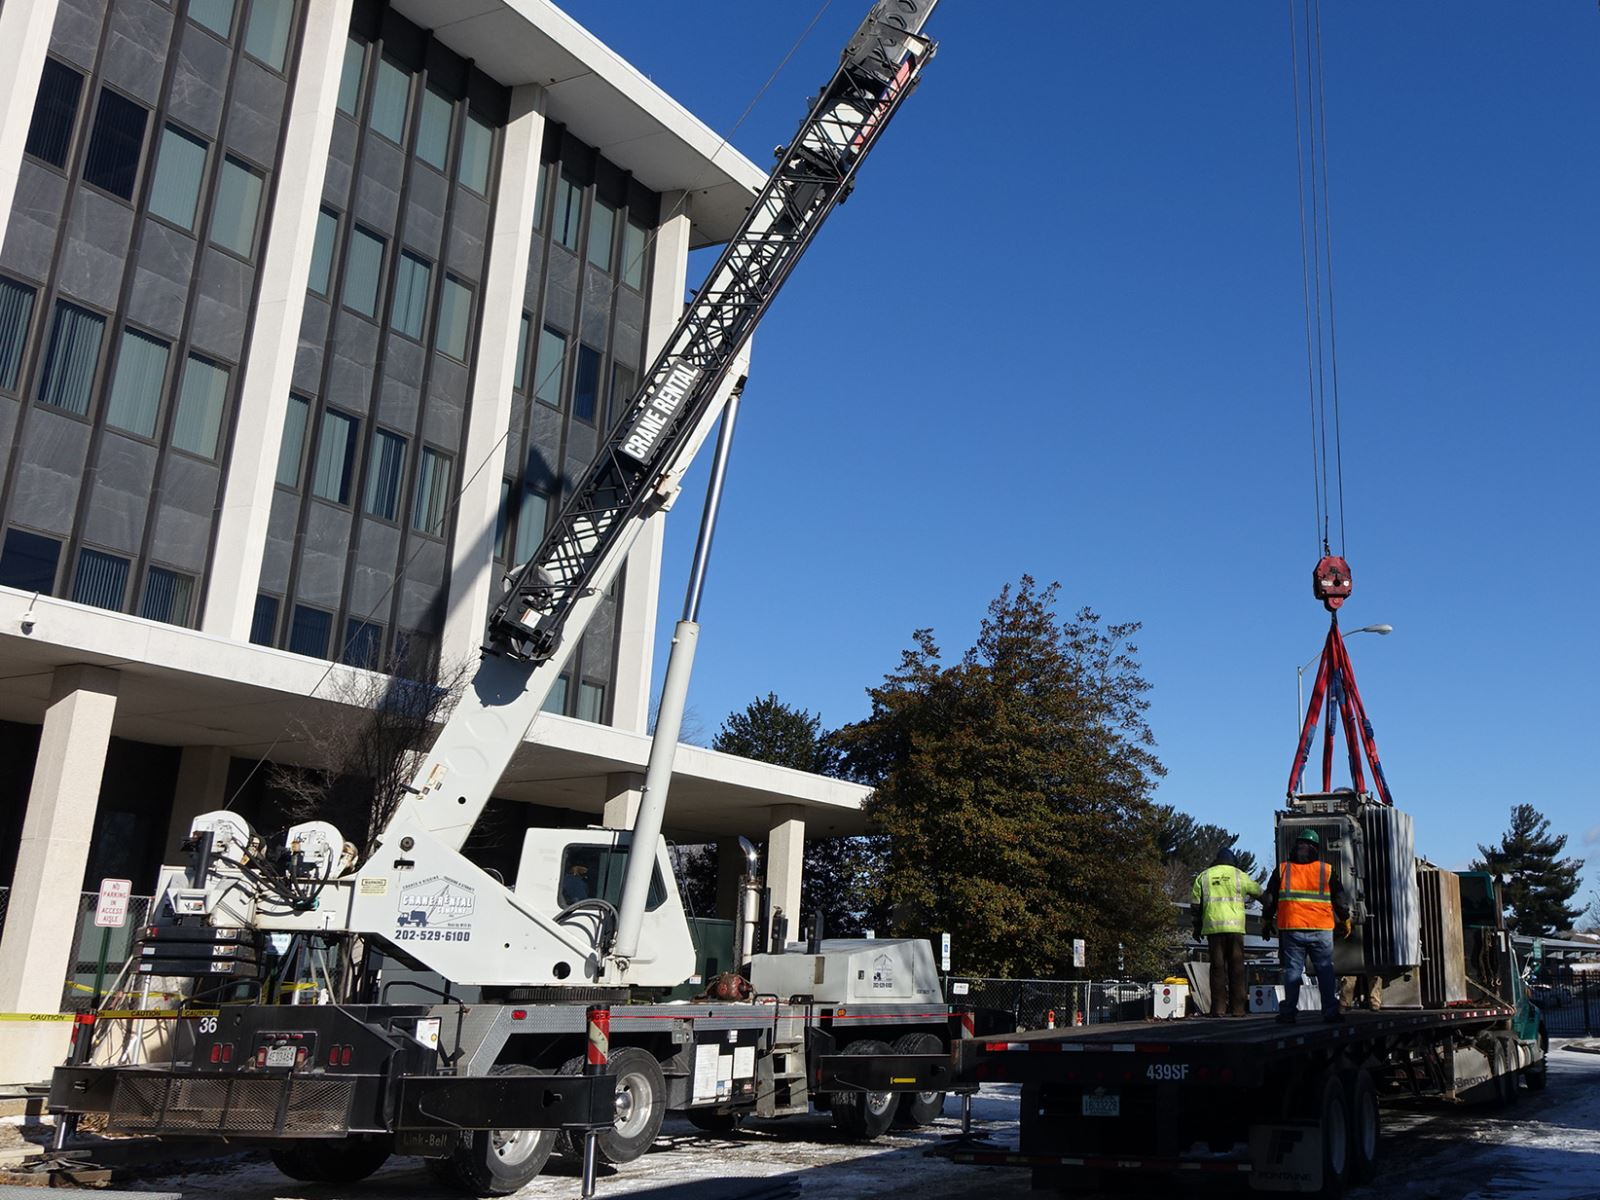 Public Safety Headquarters - Removing transformers